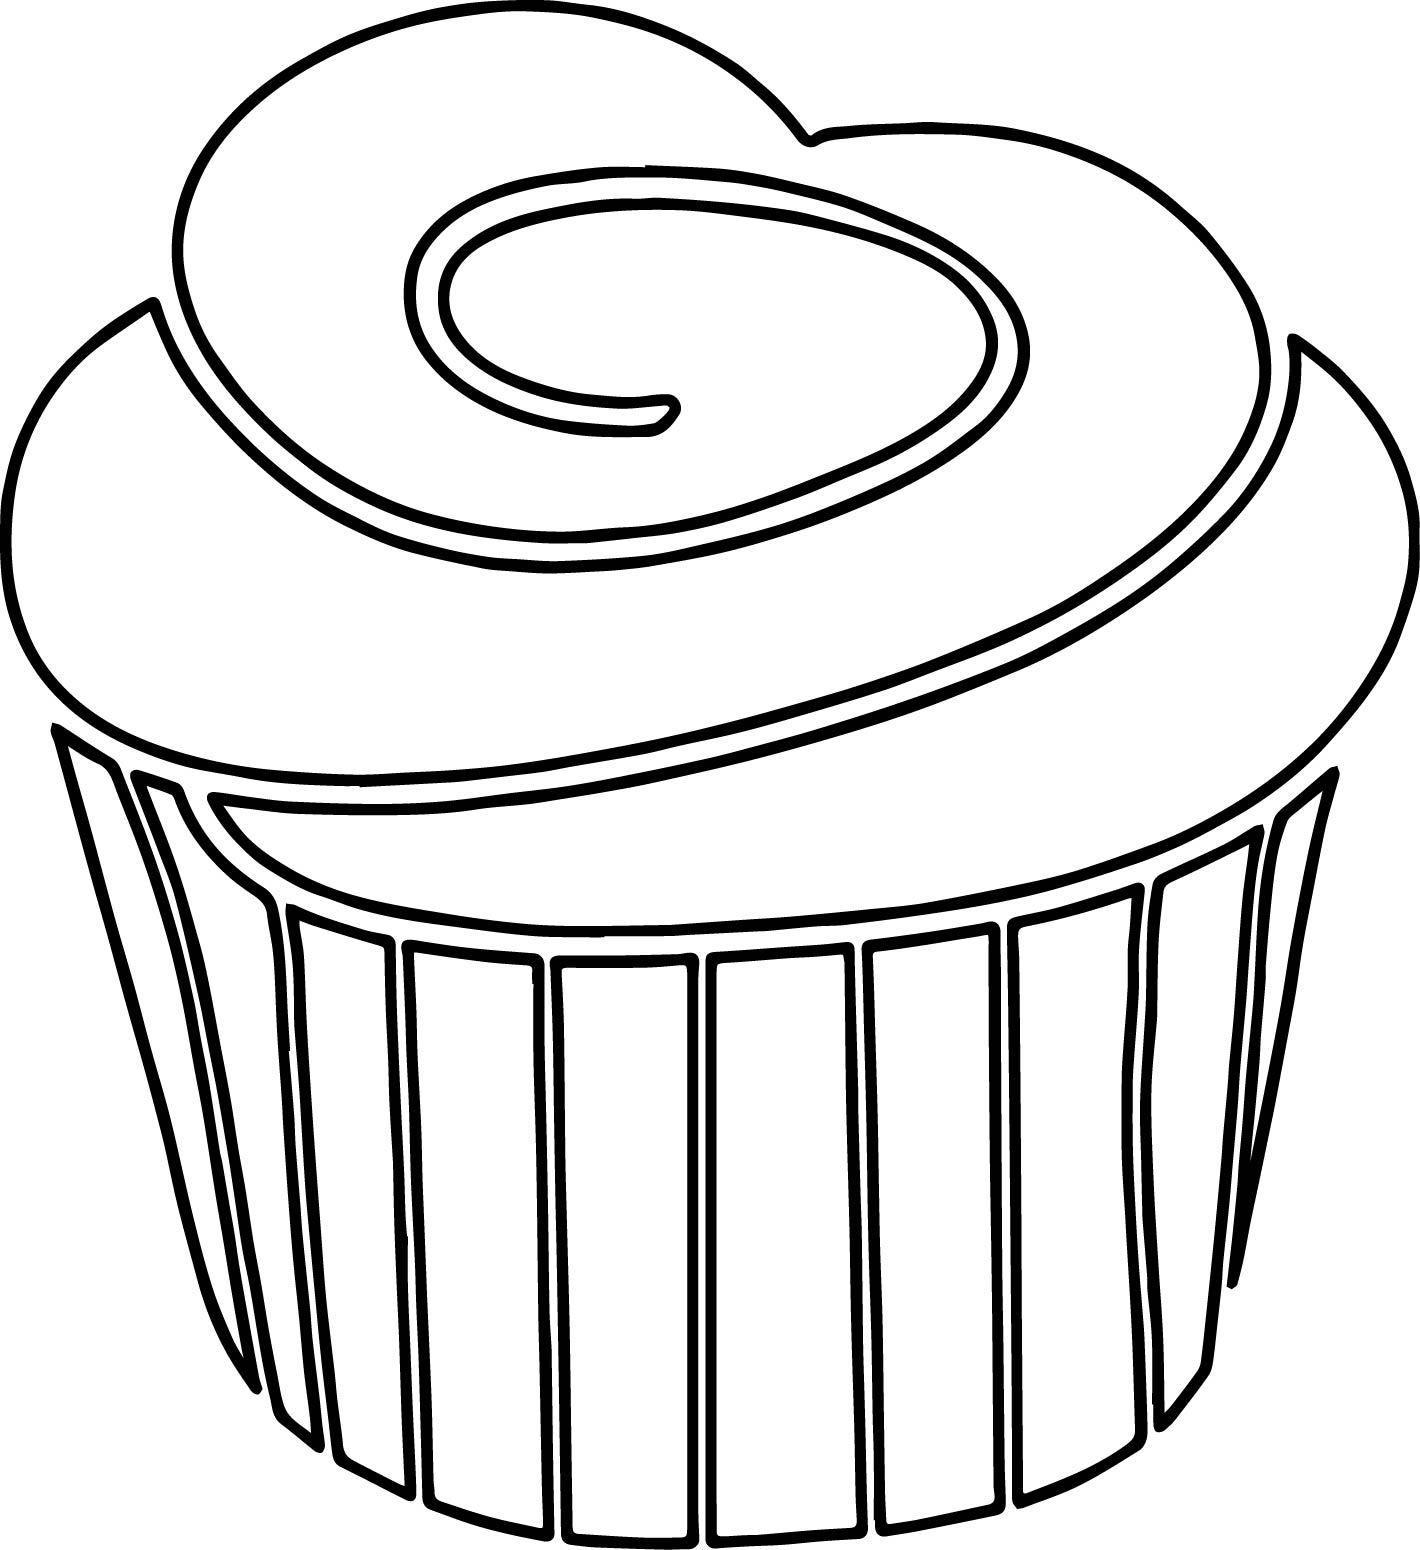 a strawberry cupcake with black white outline frosting on top